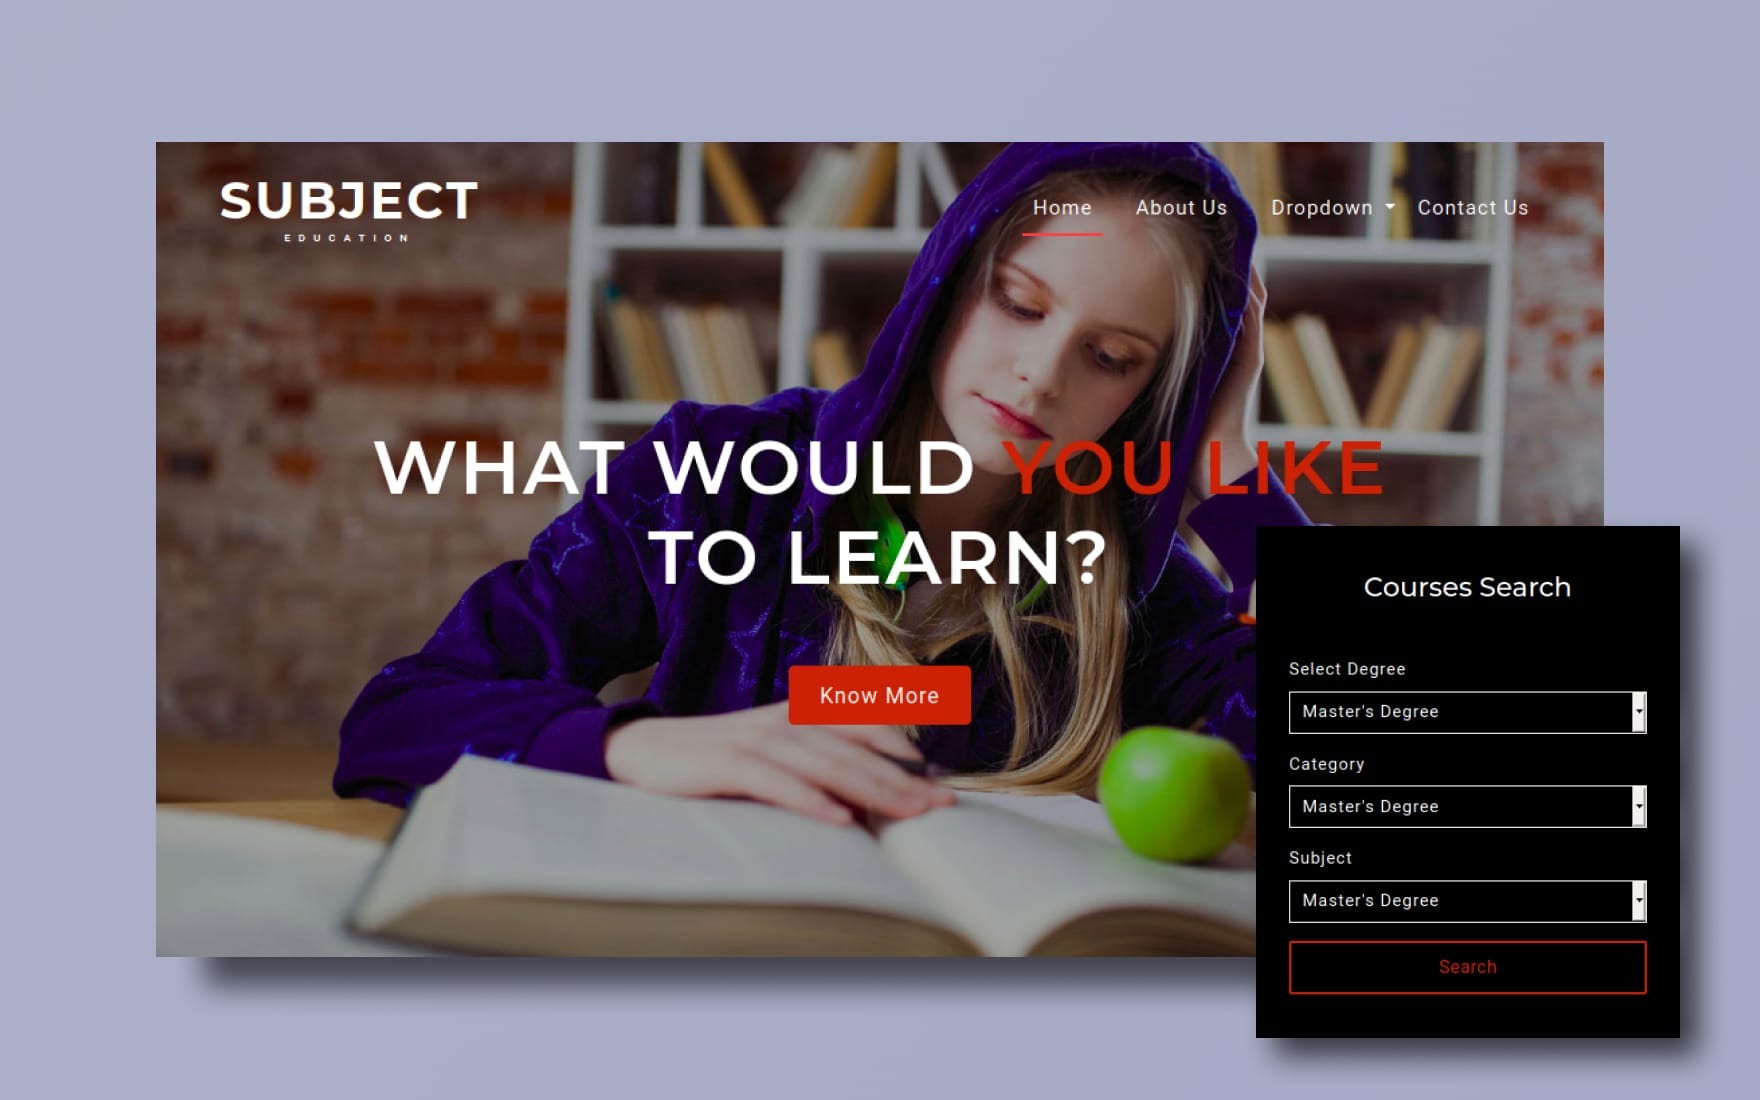 Subject an Education Category Bootstrap Responsive Web Template